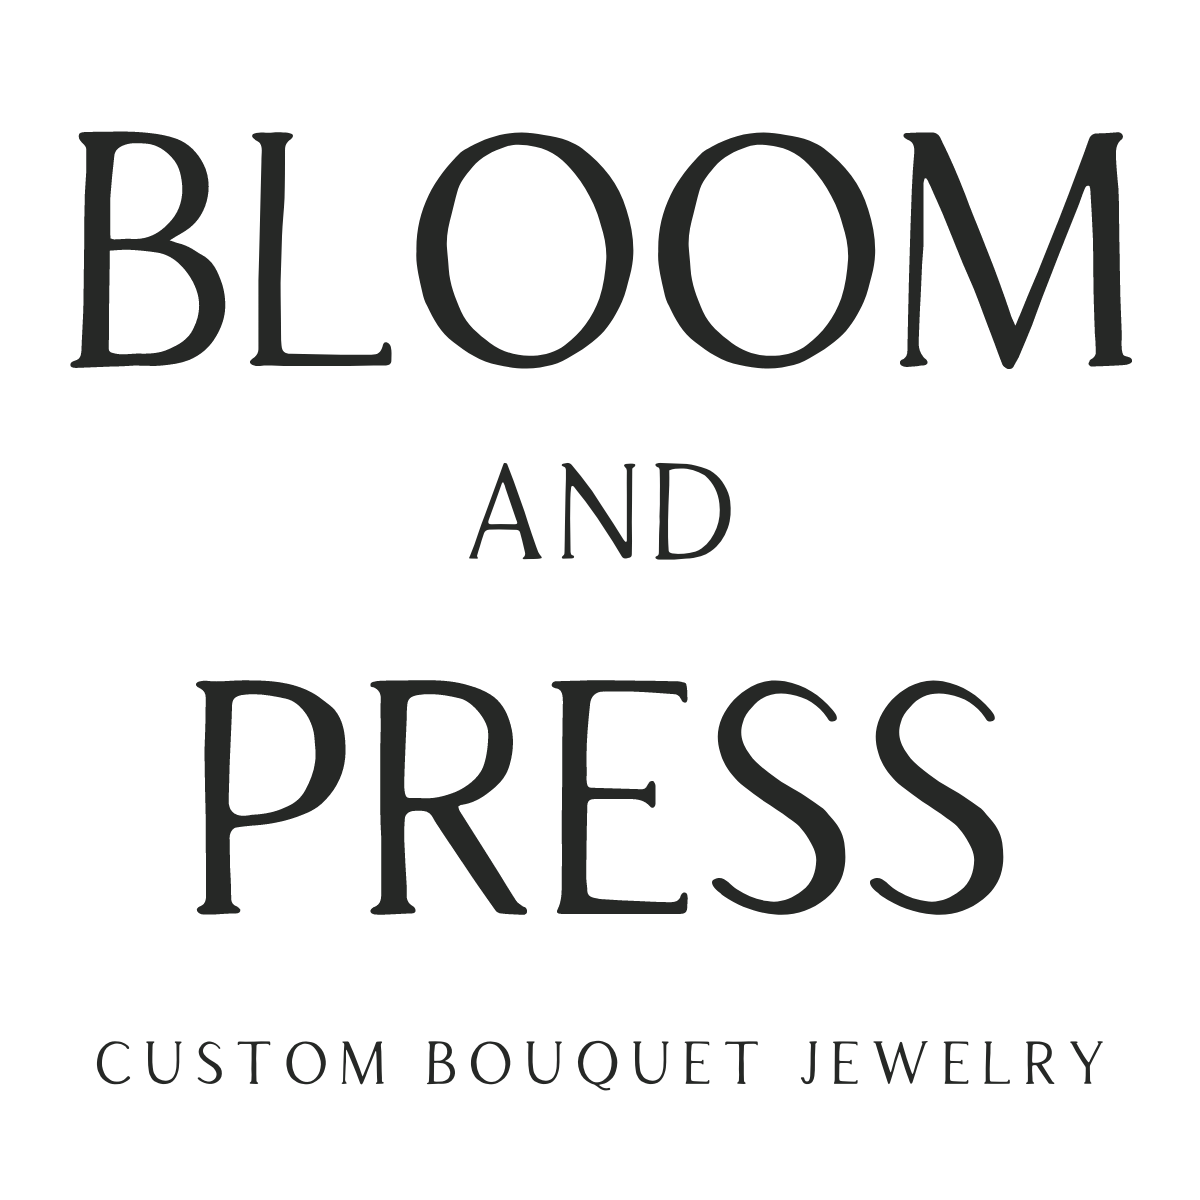 Bloom & Press